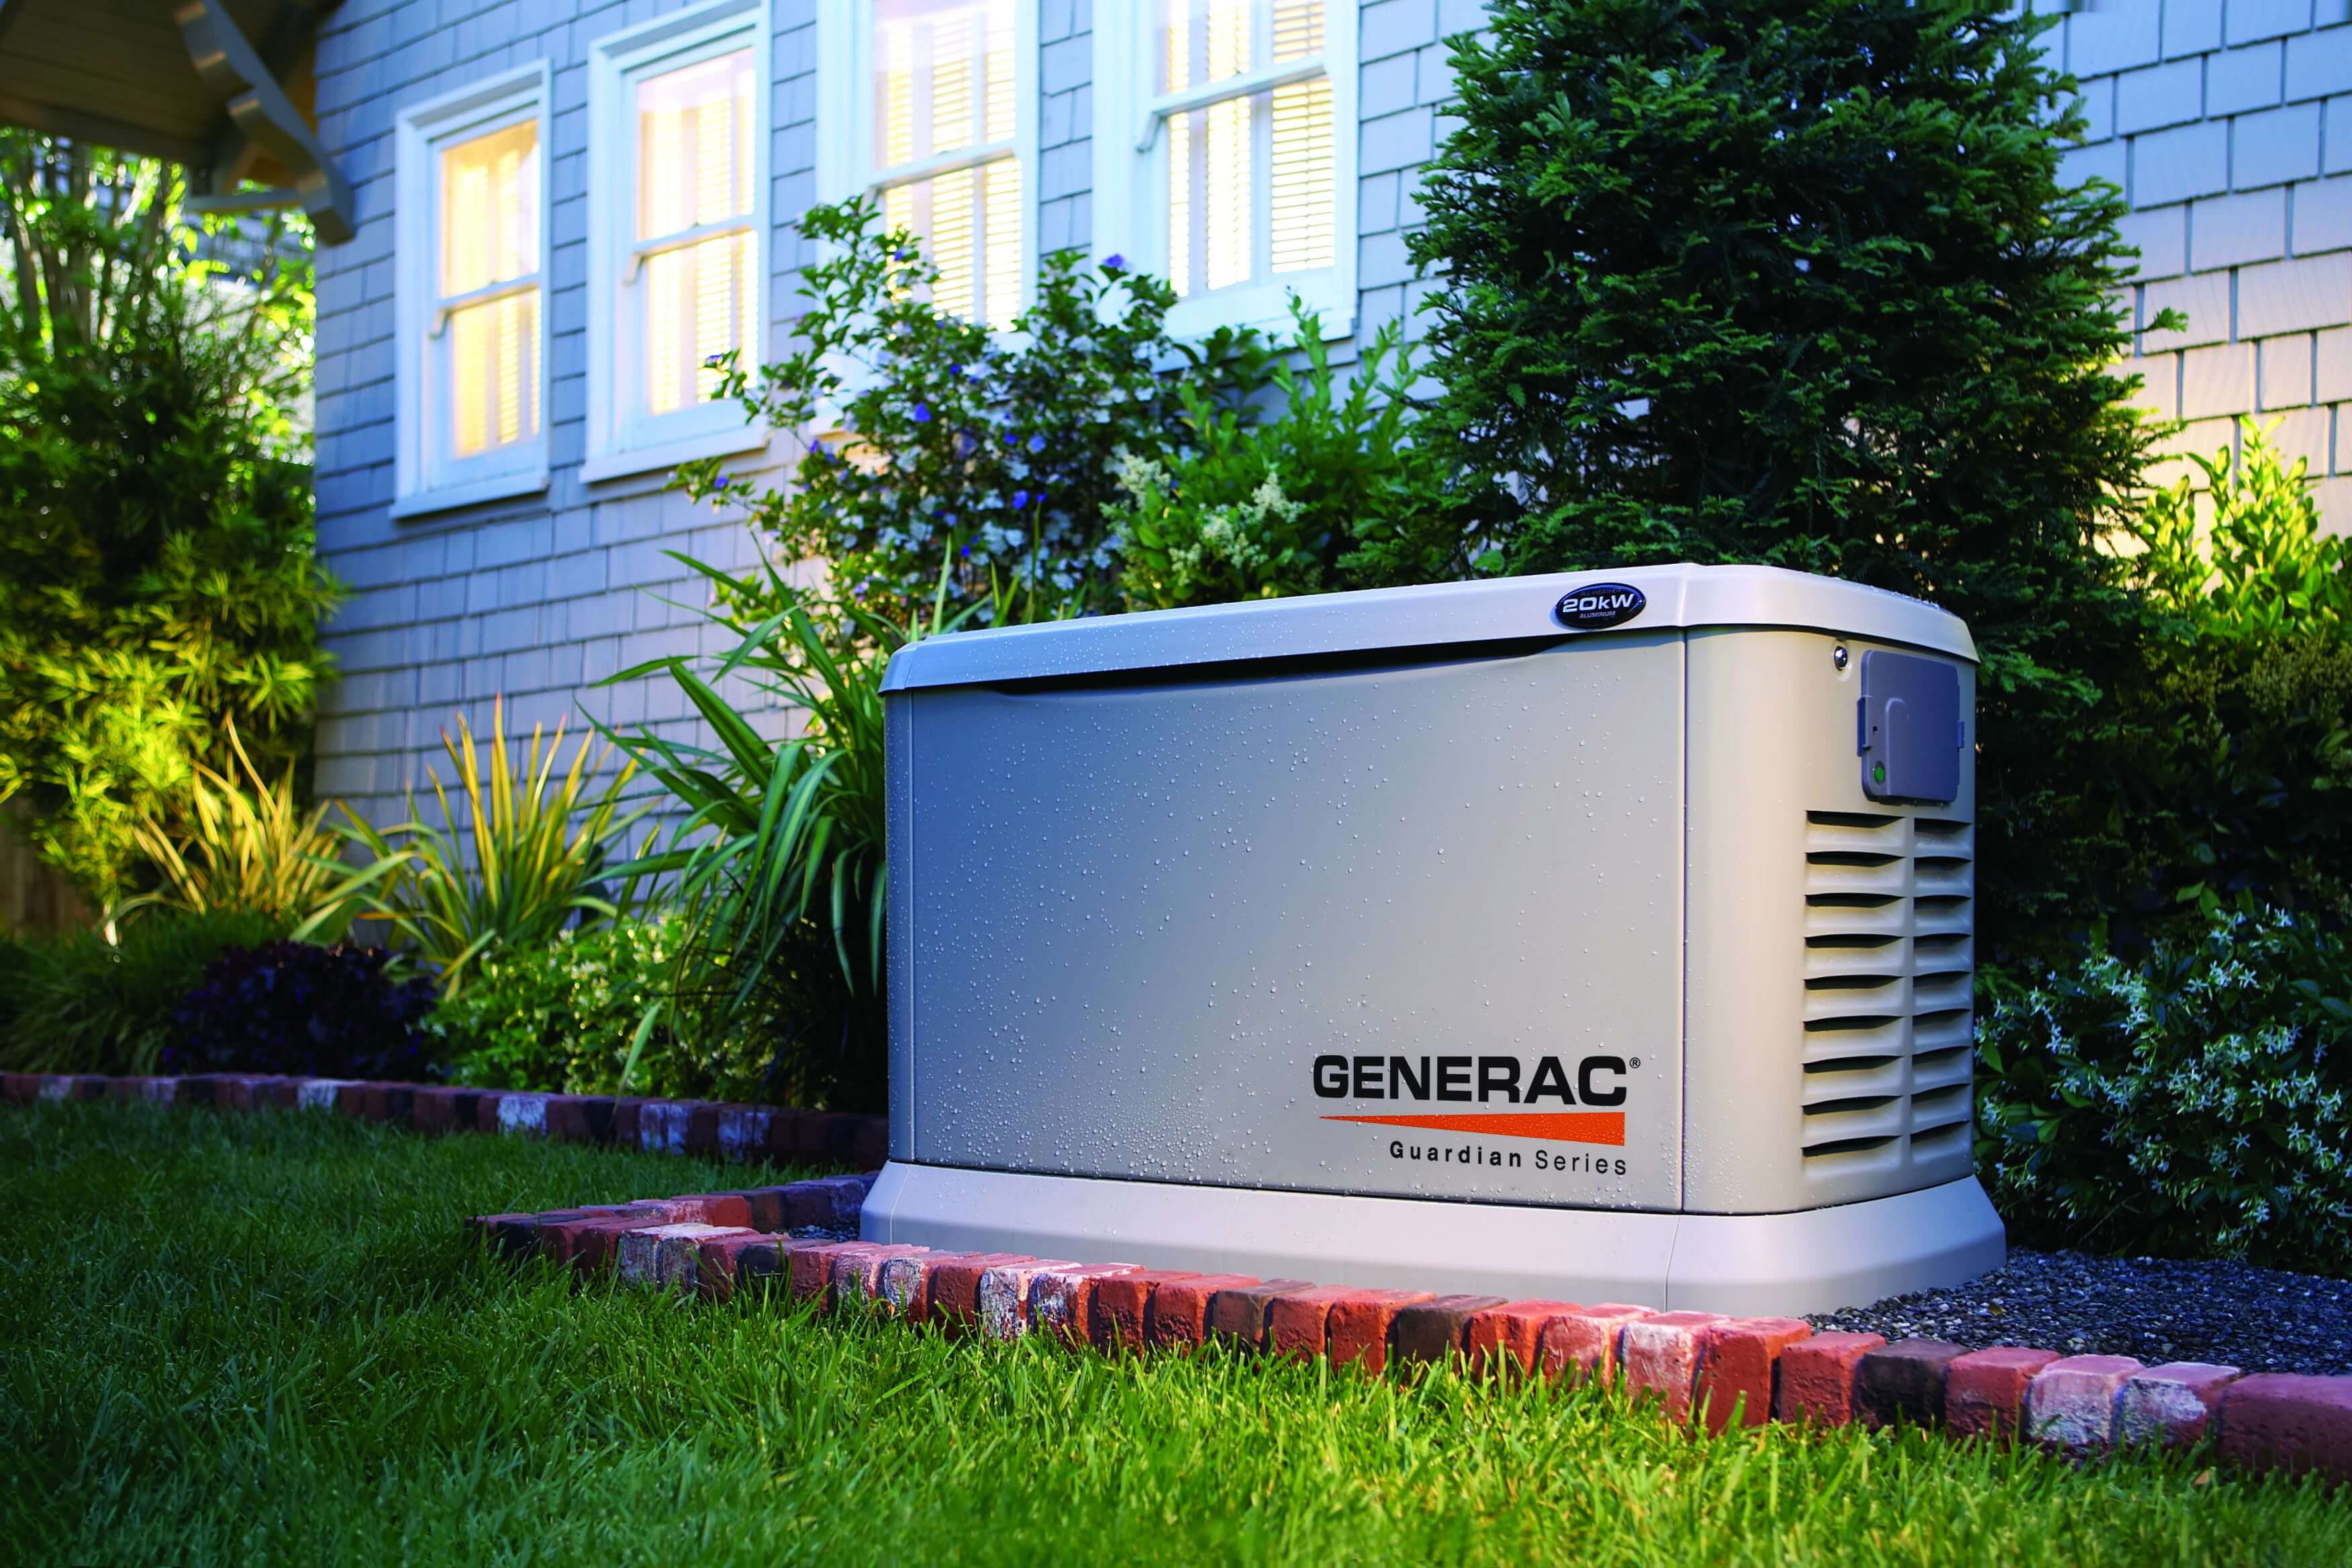 Generac Generator Review – Best Standby and Portable Generator for